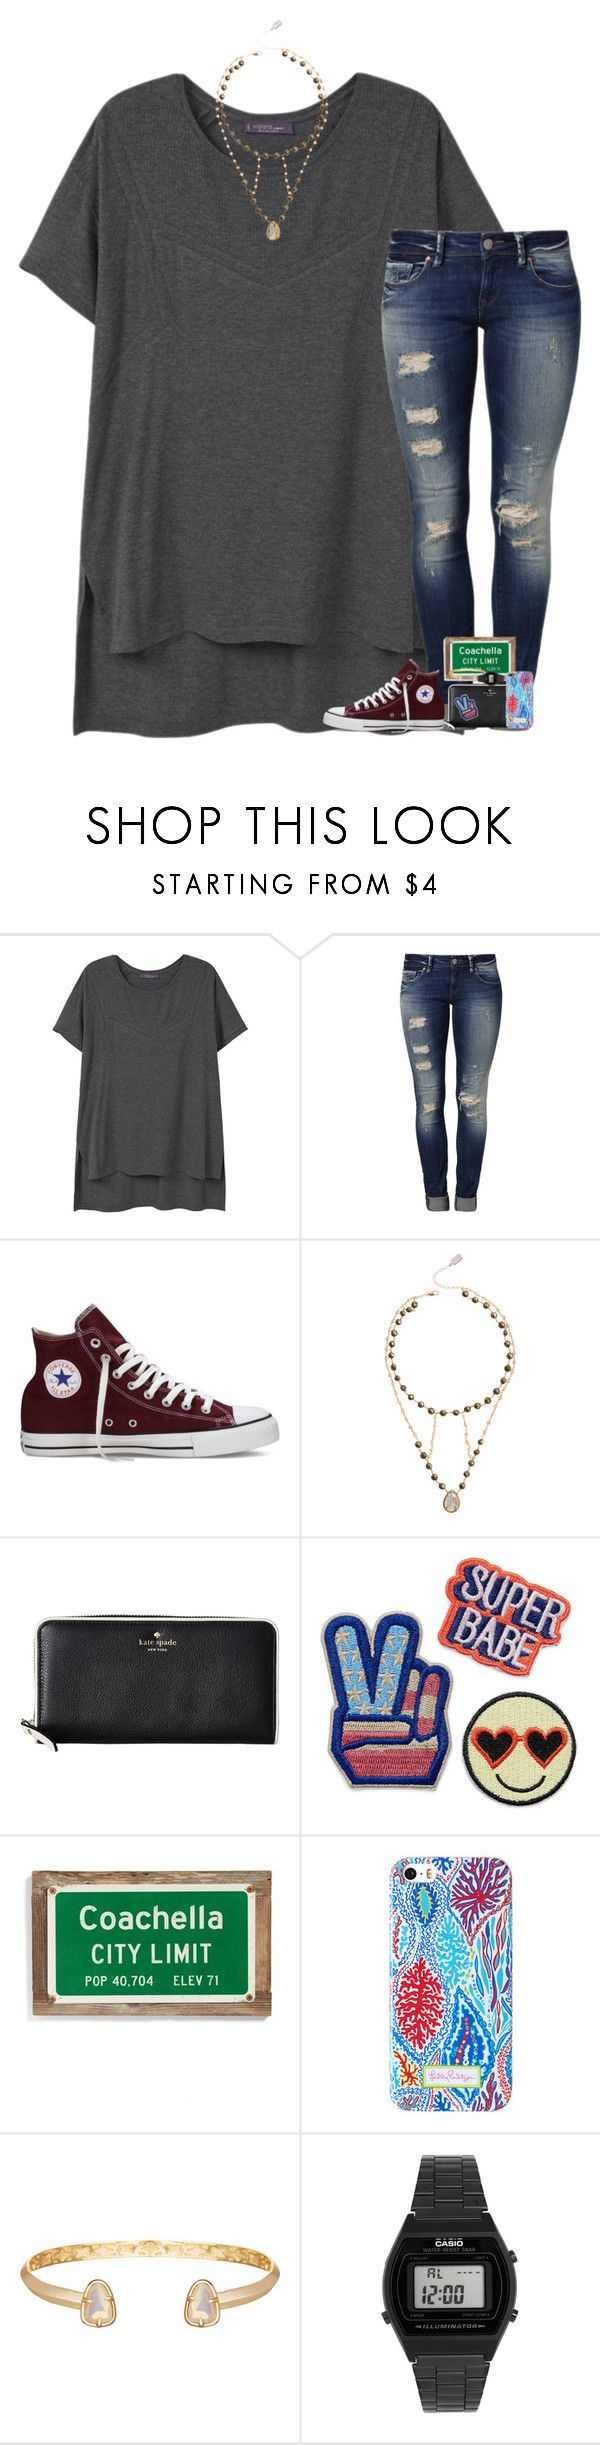 """•don't fall in love. it sucks•"" by cfc-28-sc ❤ liked on Polyvore featuring Violeta by Mango, Mavi, Converse, Ela Rae, Kate Spade, Poncho & Goldstein, Kendra Scott and Casio"